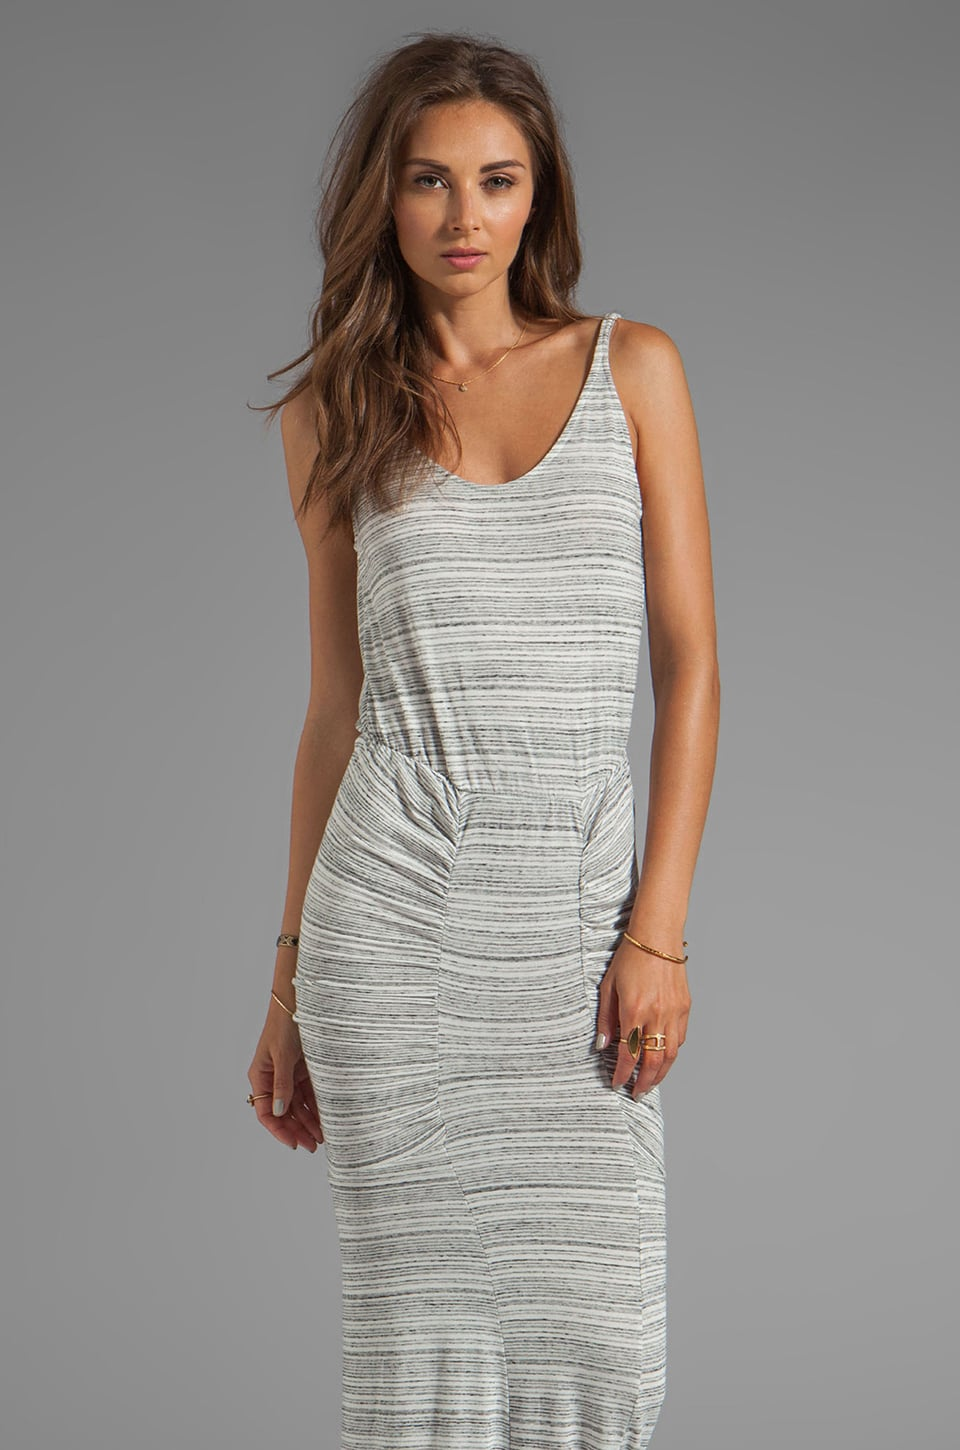 Boulee Freida Dress in Stripe